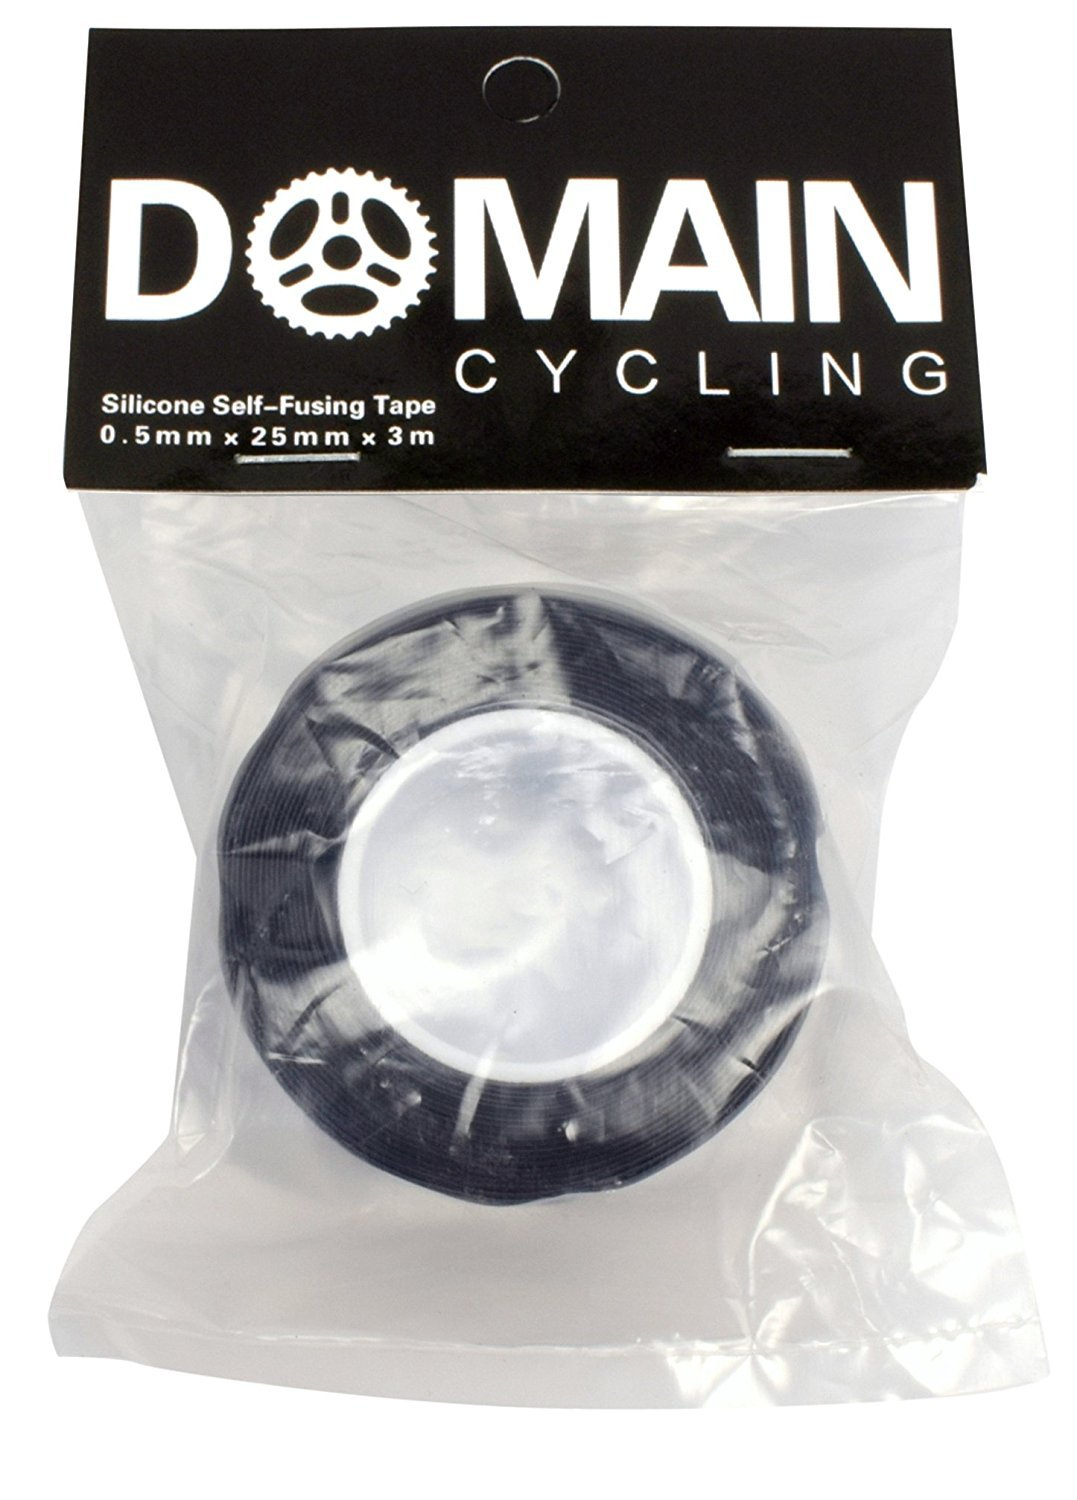 Domain Cycling White Silicone Self Fusing Bicycle Handlebar Self Bonding Repair Tape 10 ft Roll